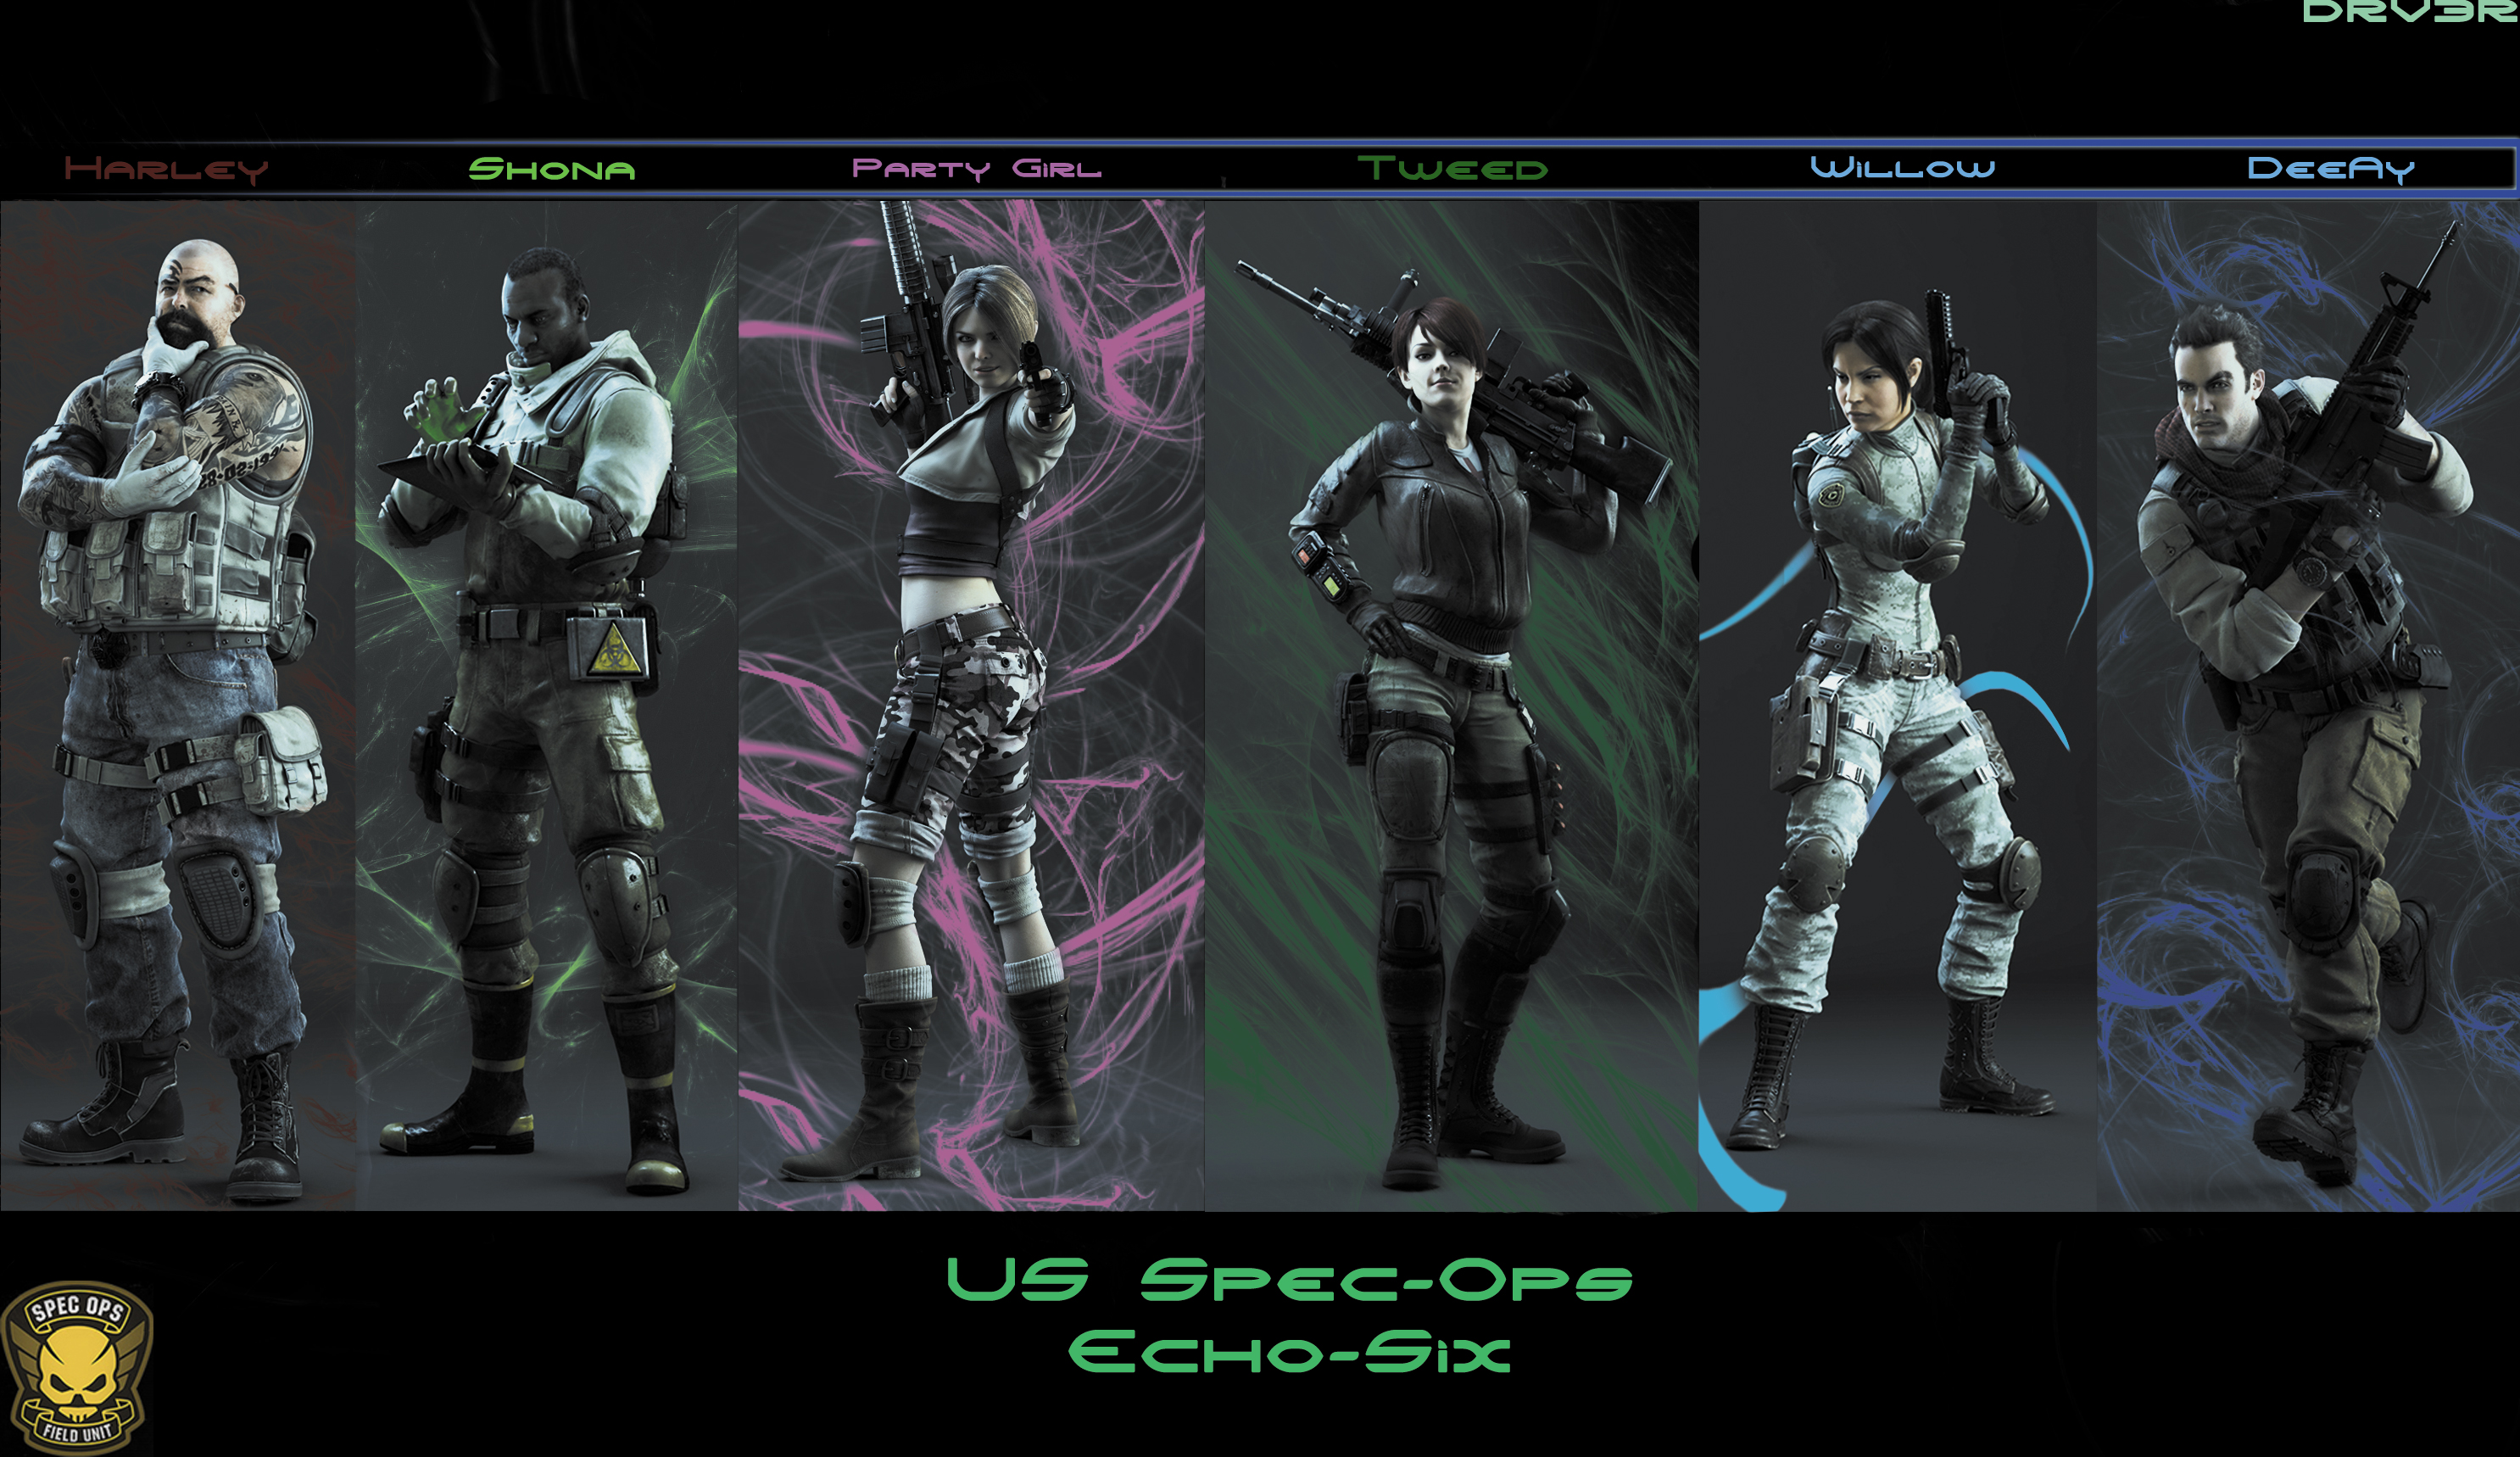 Us Spec Ops Echo Six Re Operation Raccoon City By Drv3r On Deviantart